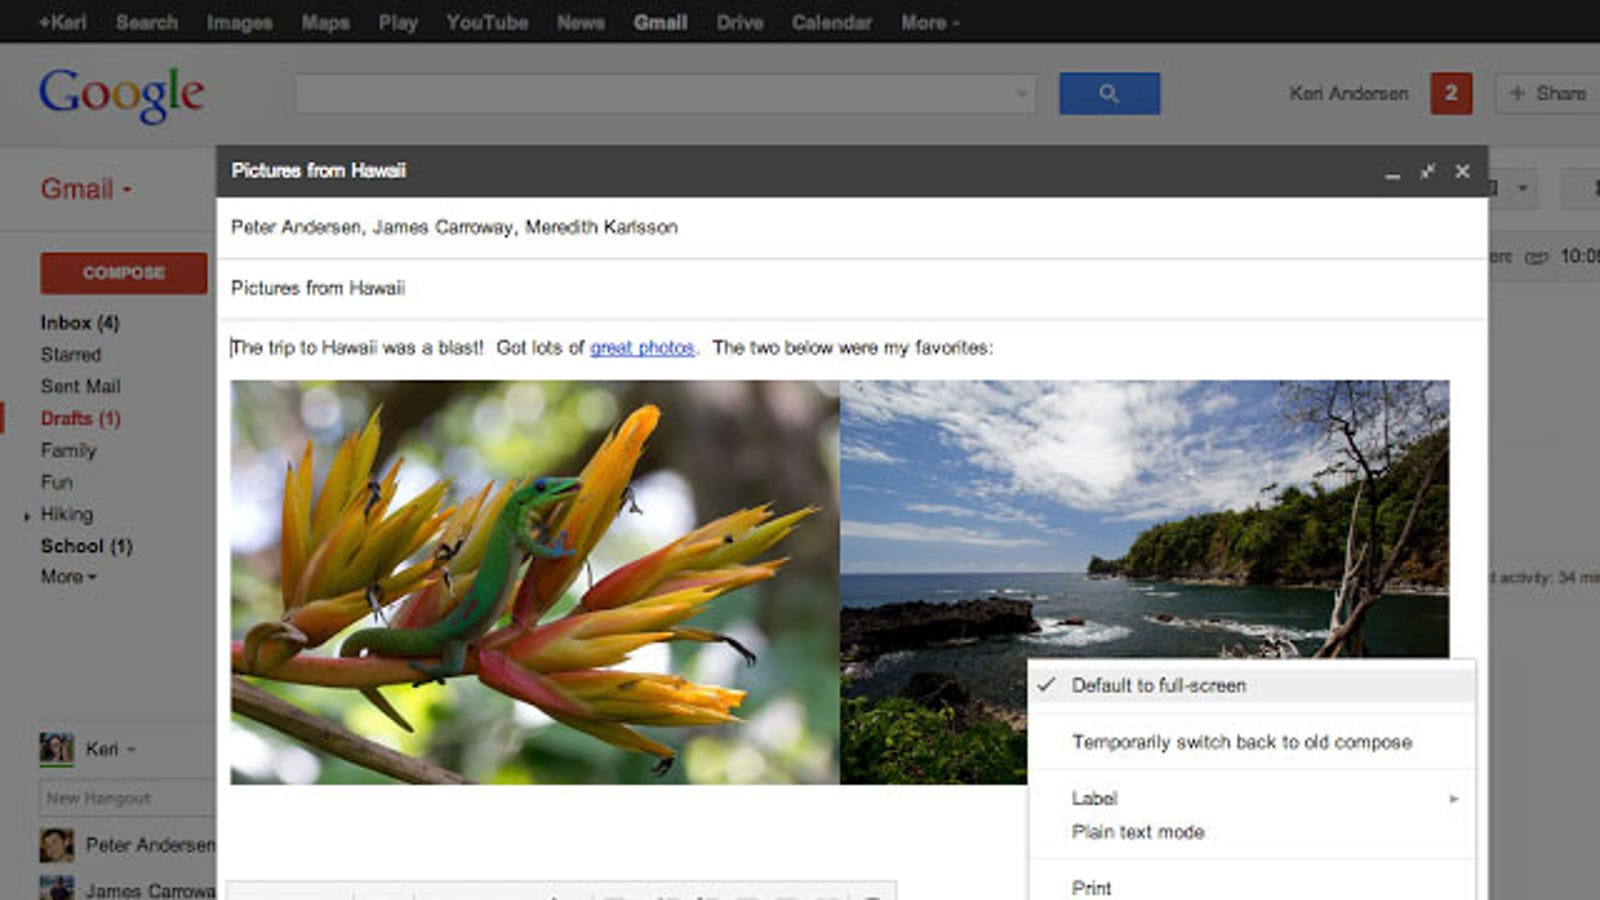 Gmail Finally Gets a Default Full-Screen Email Compose Window